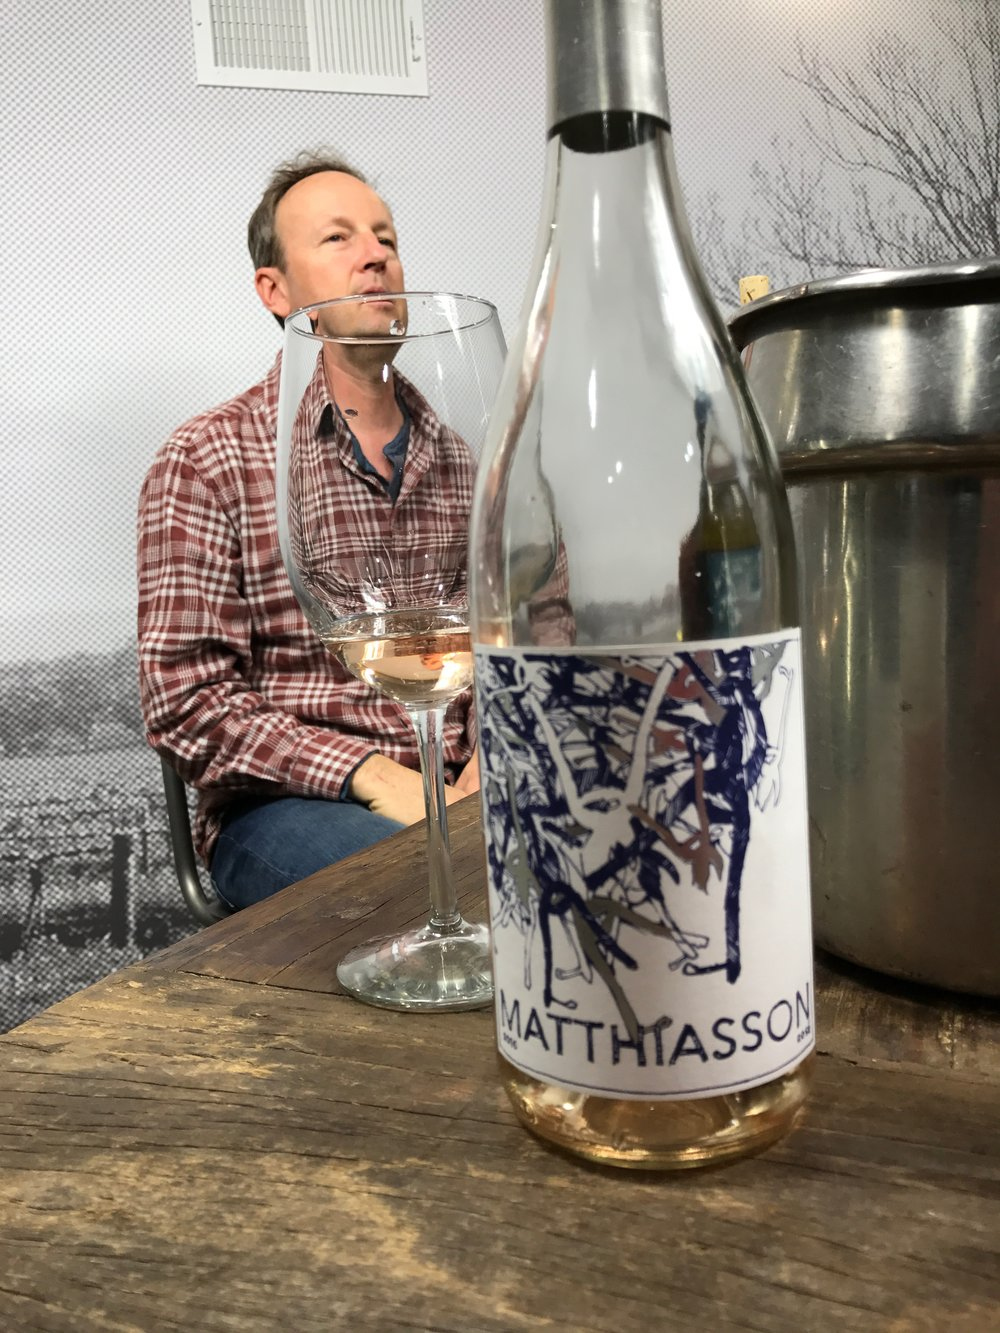 That's Steve  Matthiasson  (above) with his 2016 Dry Rose Wine.  It's made in California from a combination of Grenache, Syrah, Mouvèdre, and Counoise and has lots of juicy, fresh fruit flavors and it will go fabulouly with your turkey!! ($25)